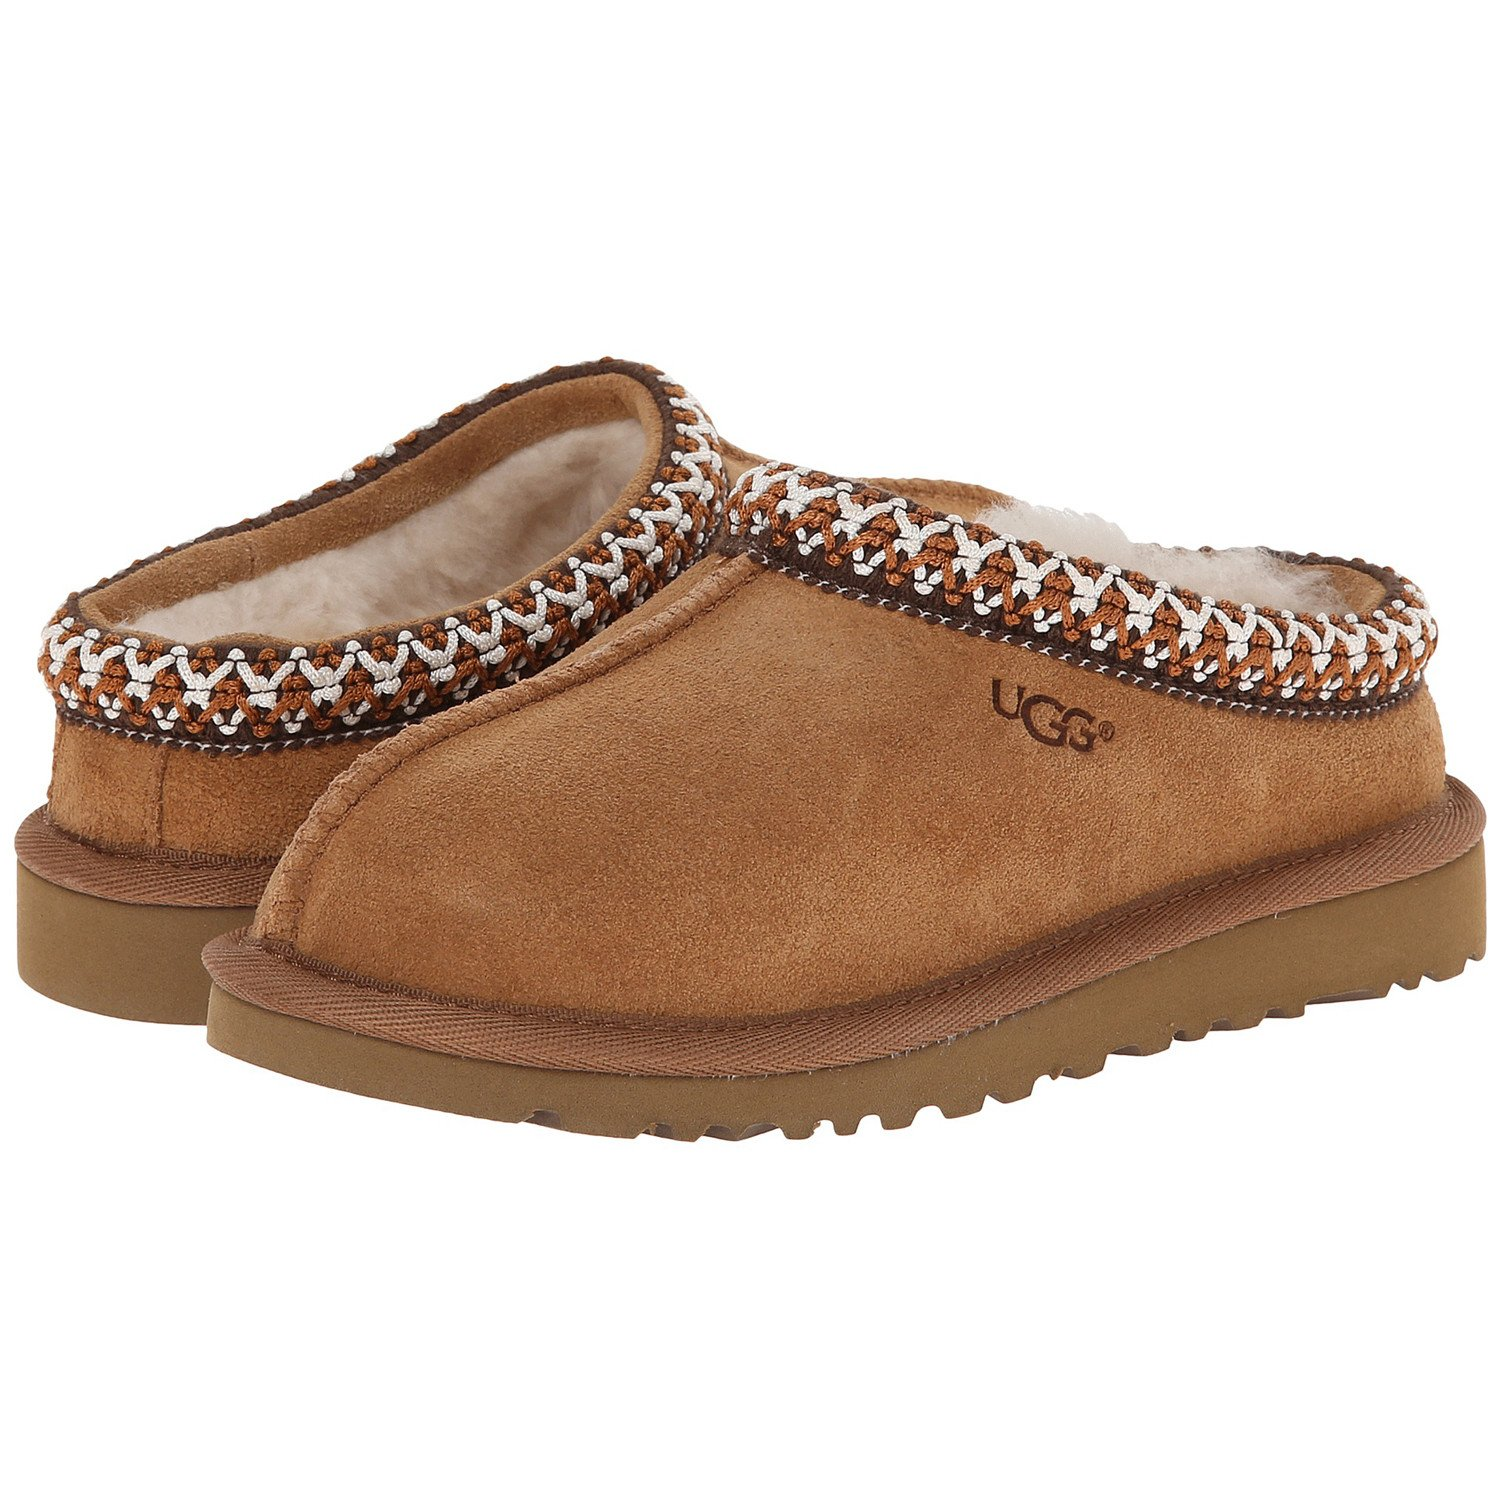 UGG Australia Girls Tasman Slipper Chestnut Size 12 M US Little Kid